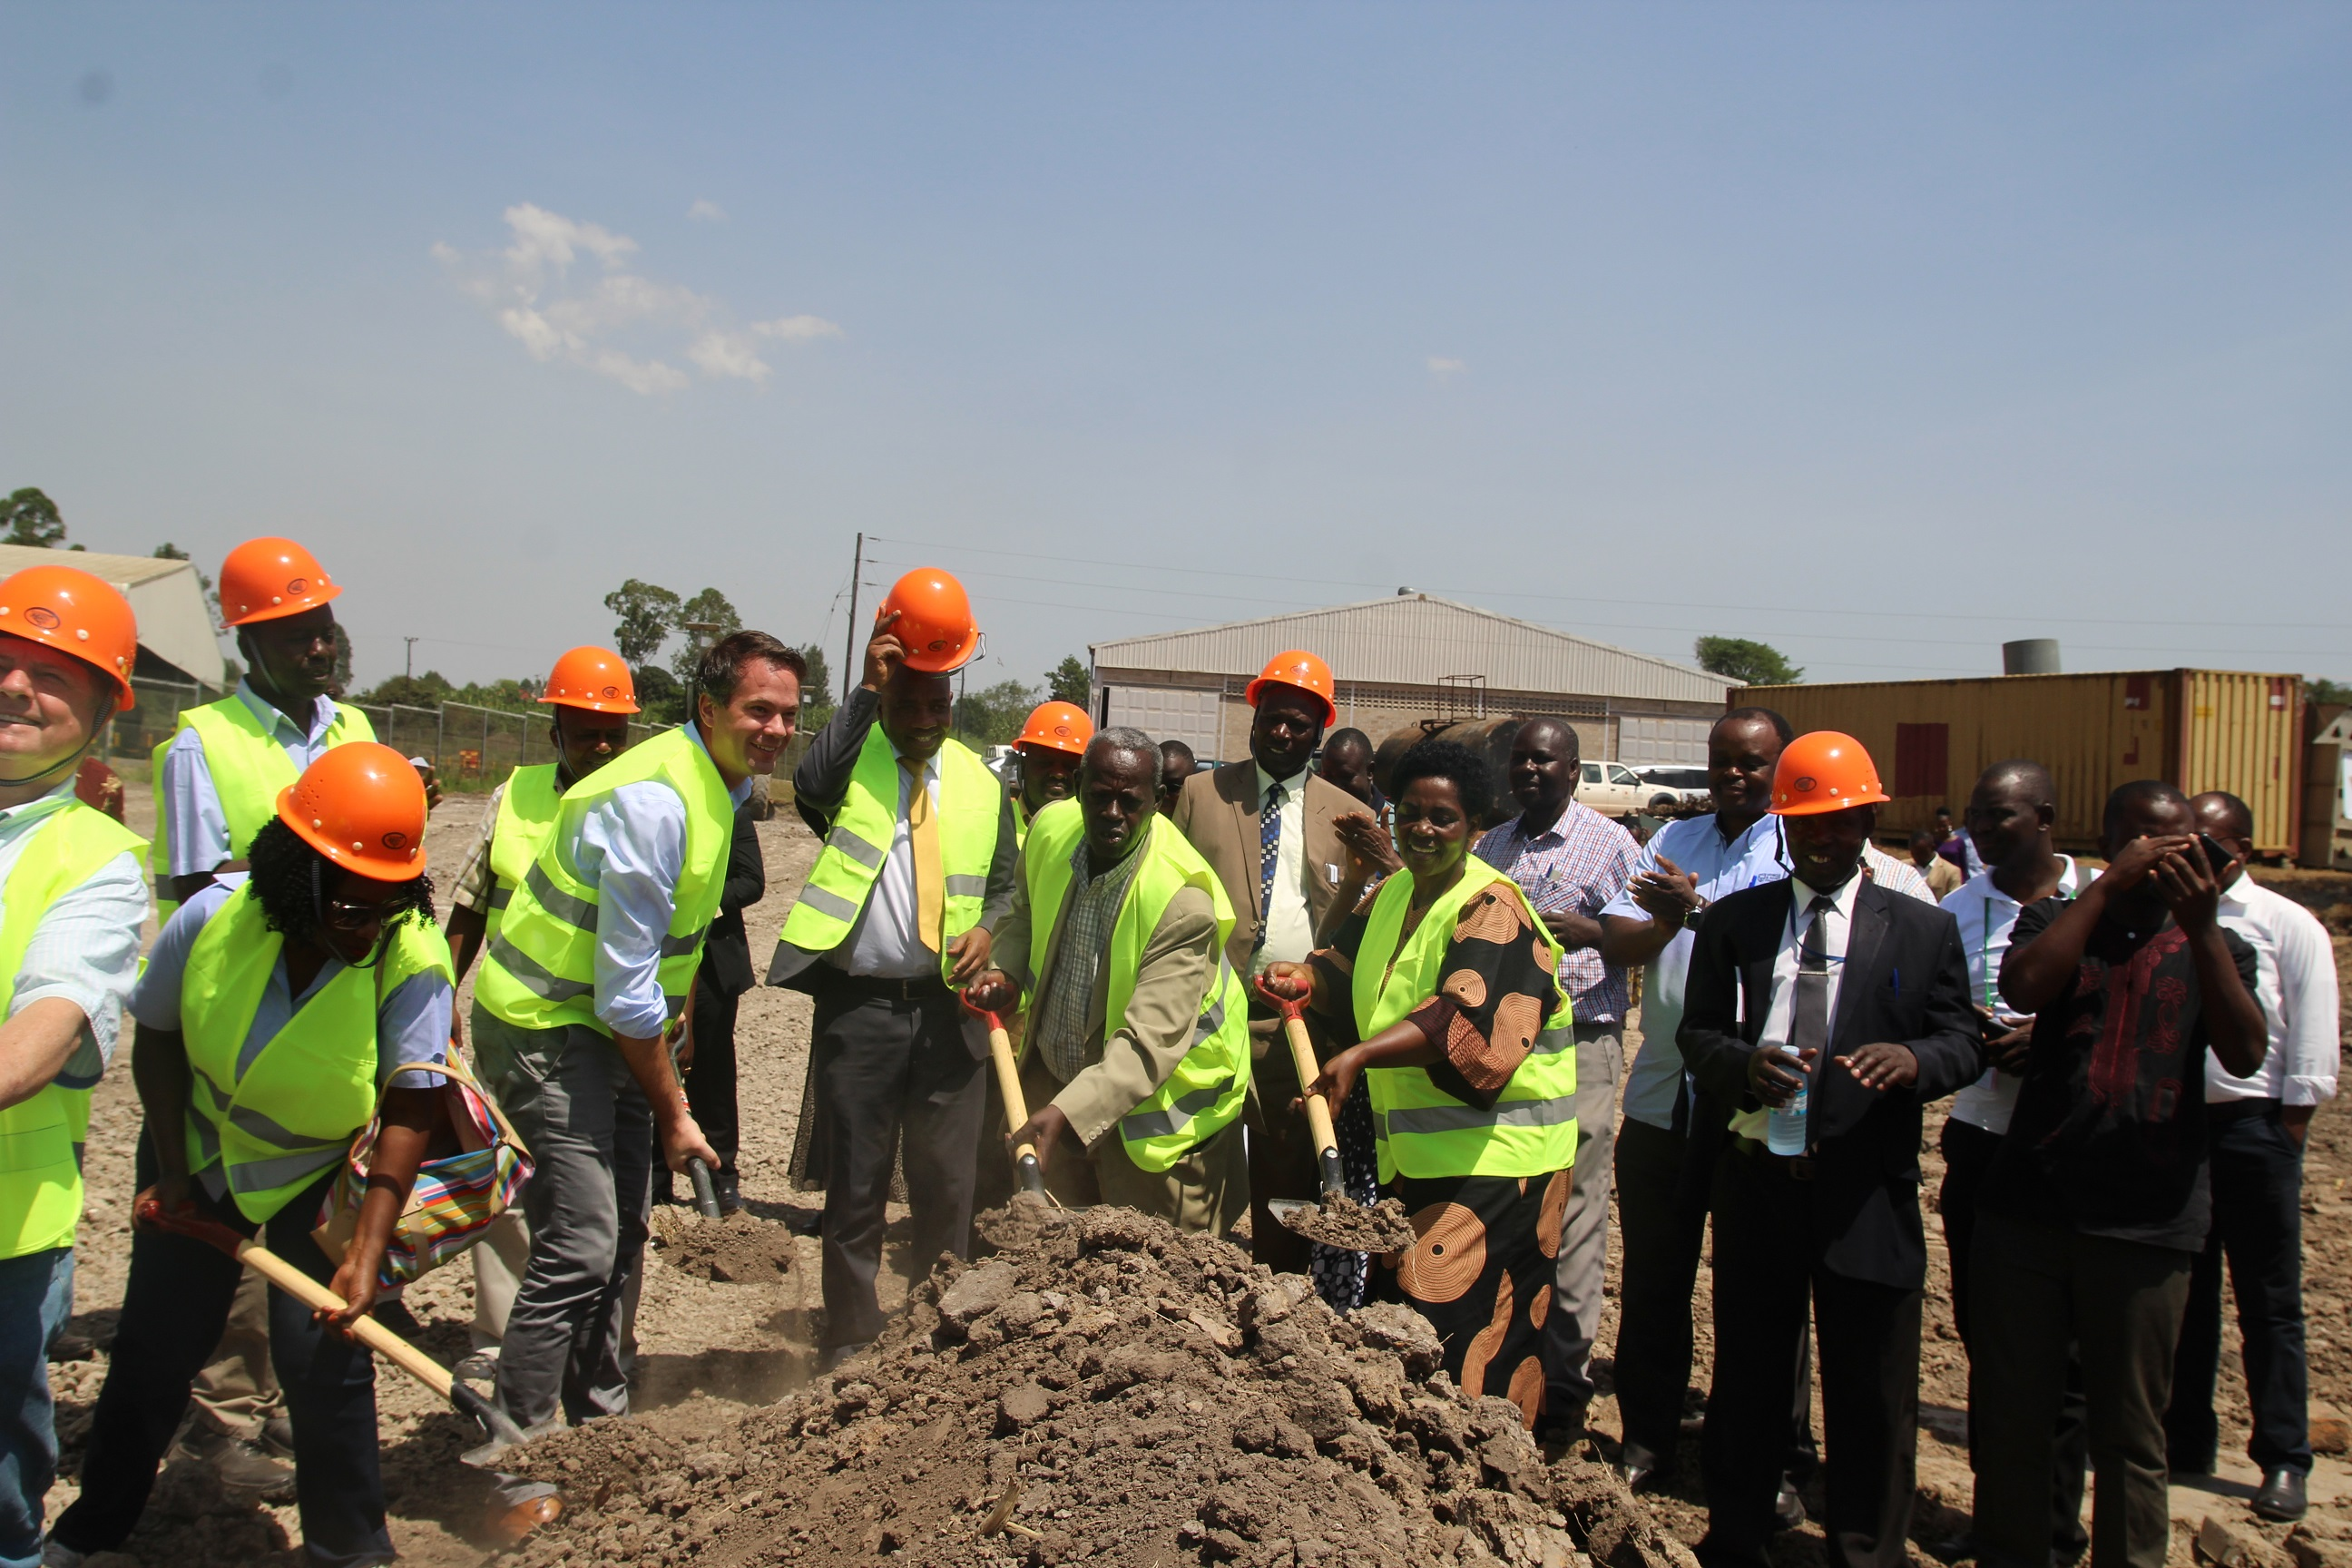 Officials from differrent stakeholders in maize value chain during the ground breaking for the construction of a Shs 20 billion grain facility in Mbarara.I